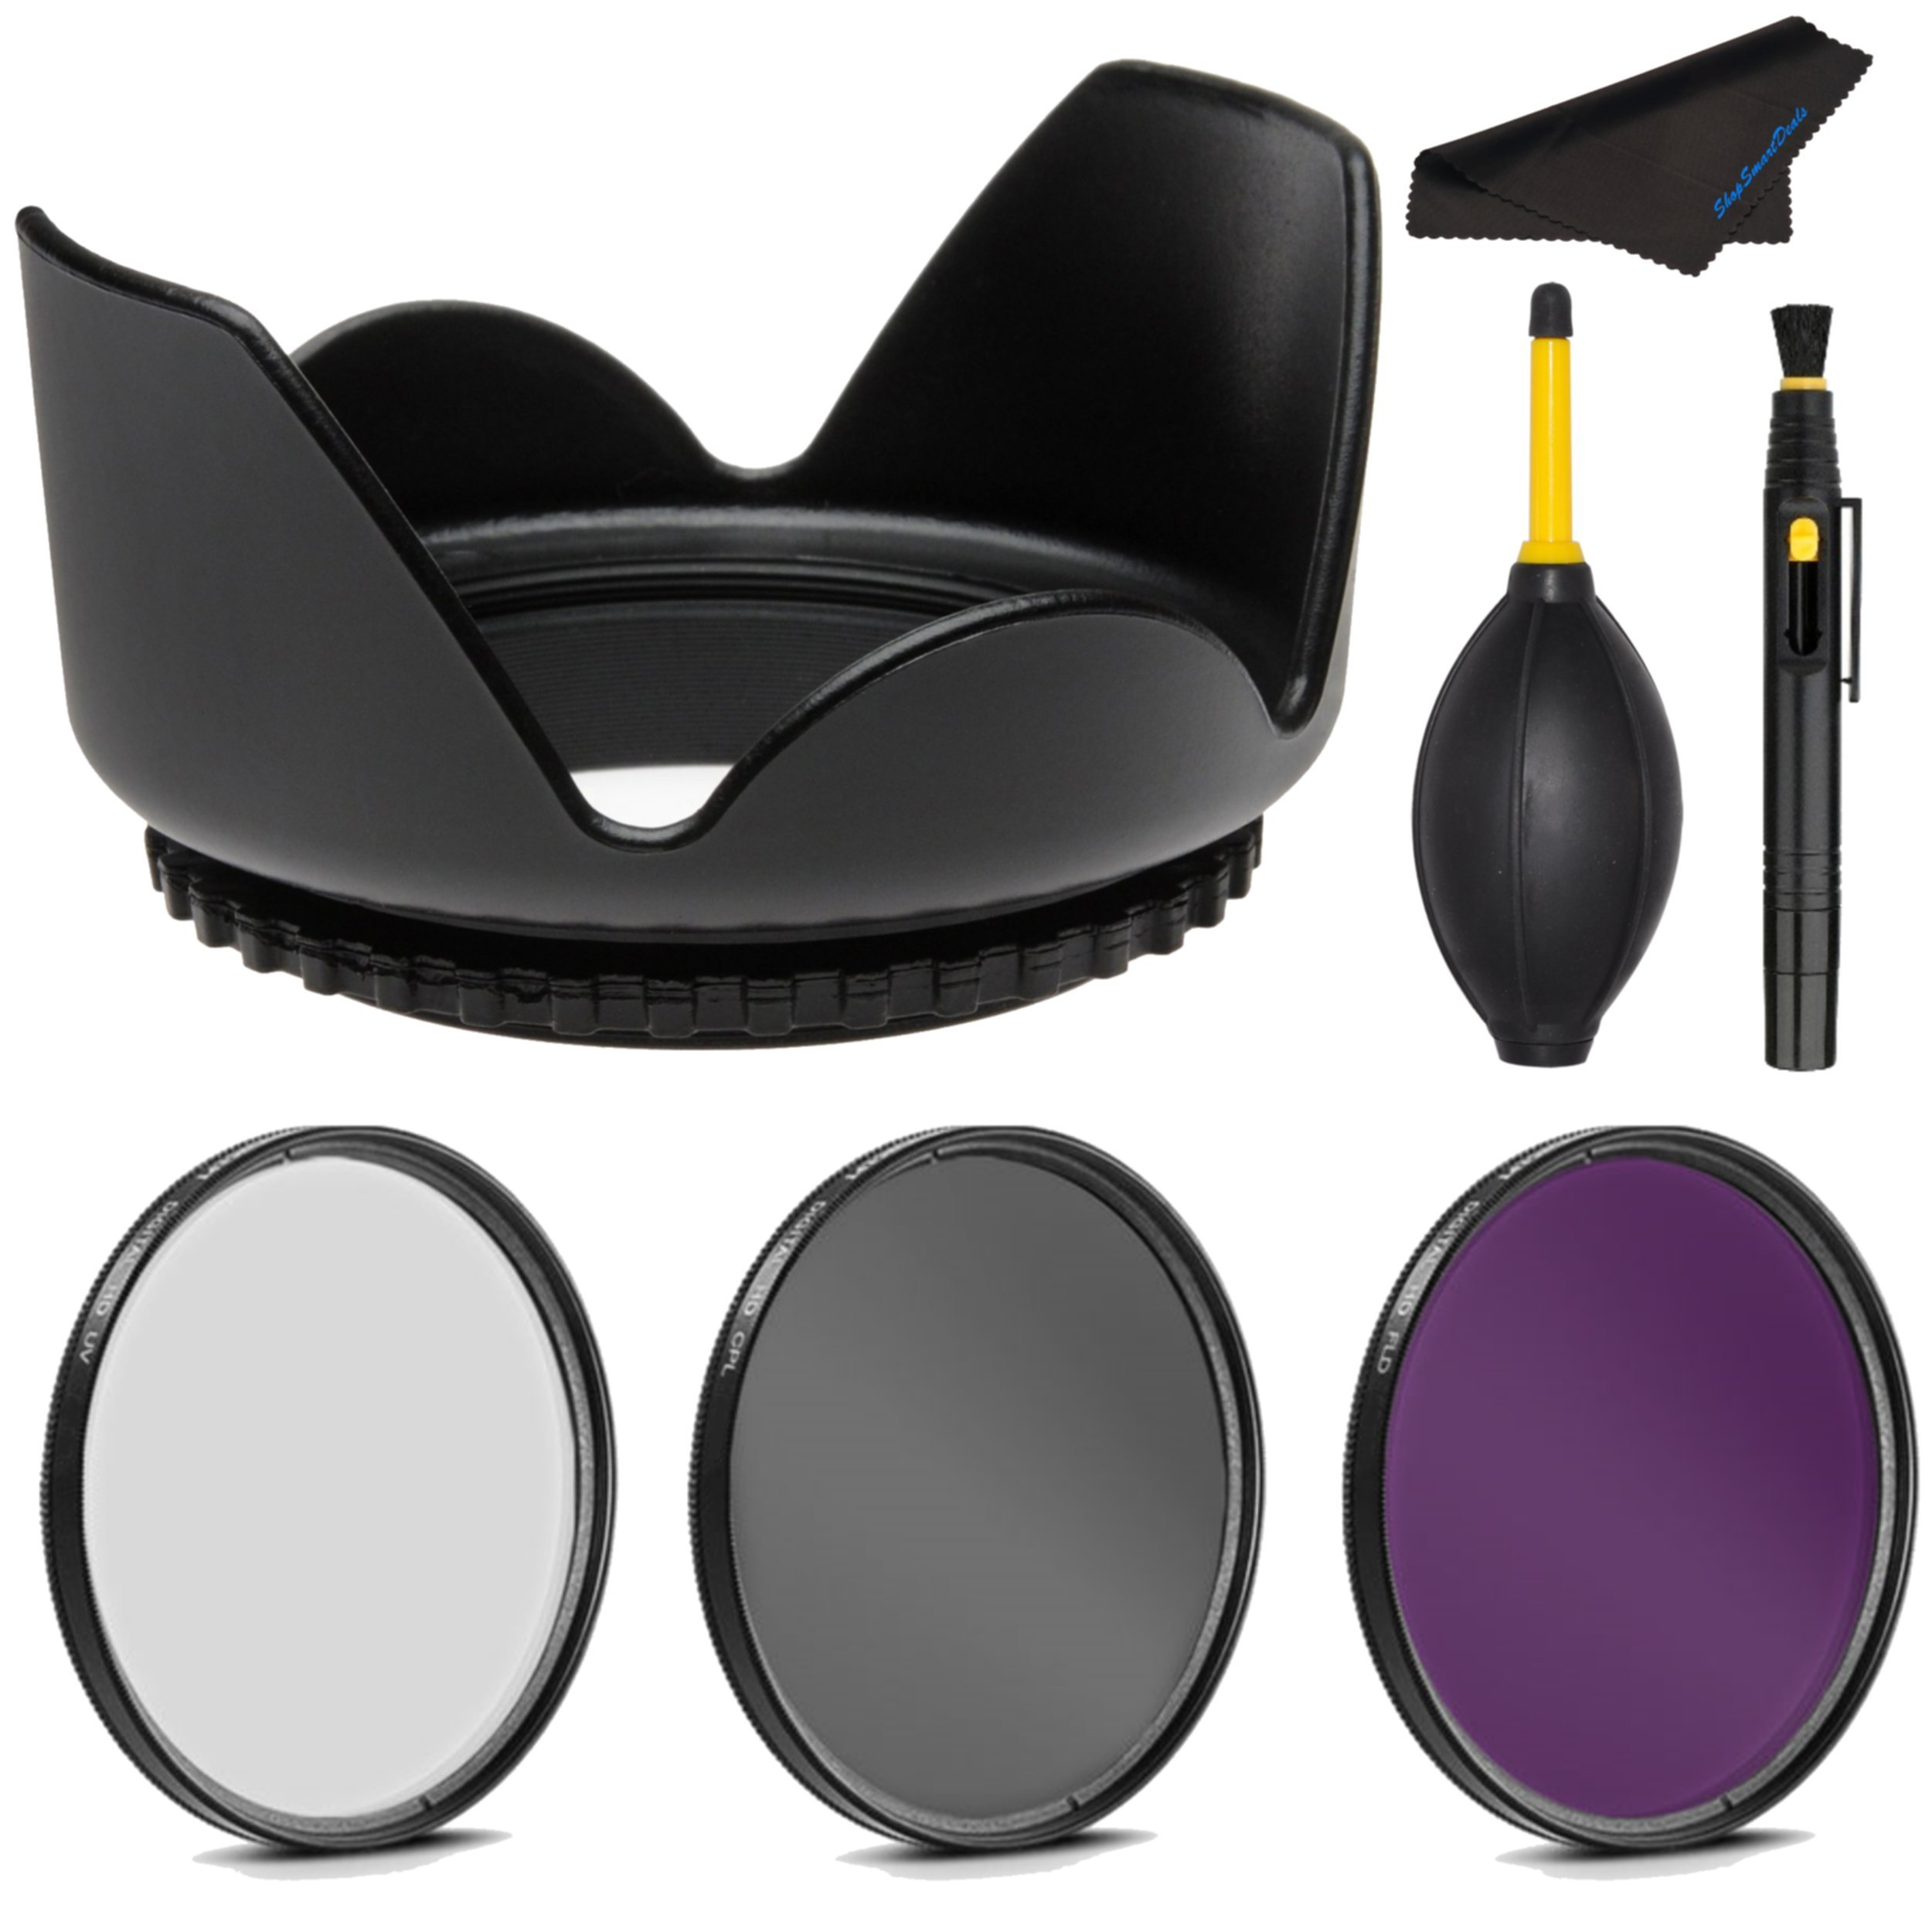 PRO 62mm Filter Kit + PRO 62 mm Tulip Lens Hood for Nikon 1 Nikkor VR 70-300mm f/4.5-5.6 - 62 mm Polarizing Filter, 62mm UV Filter, 62mm Florescent Filter & 62mm Flower Lens Shade Hood by Shop Smart Deals